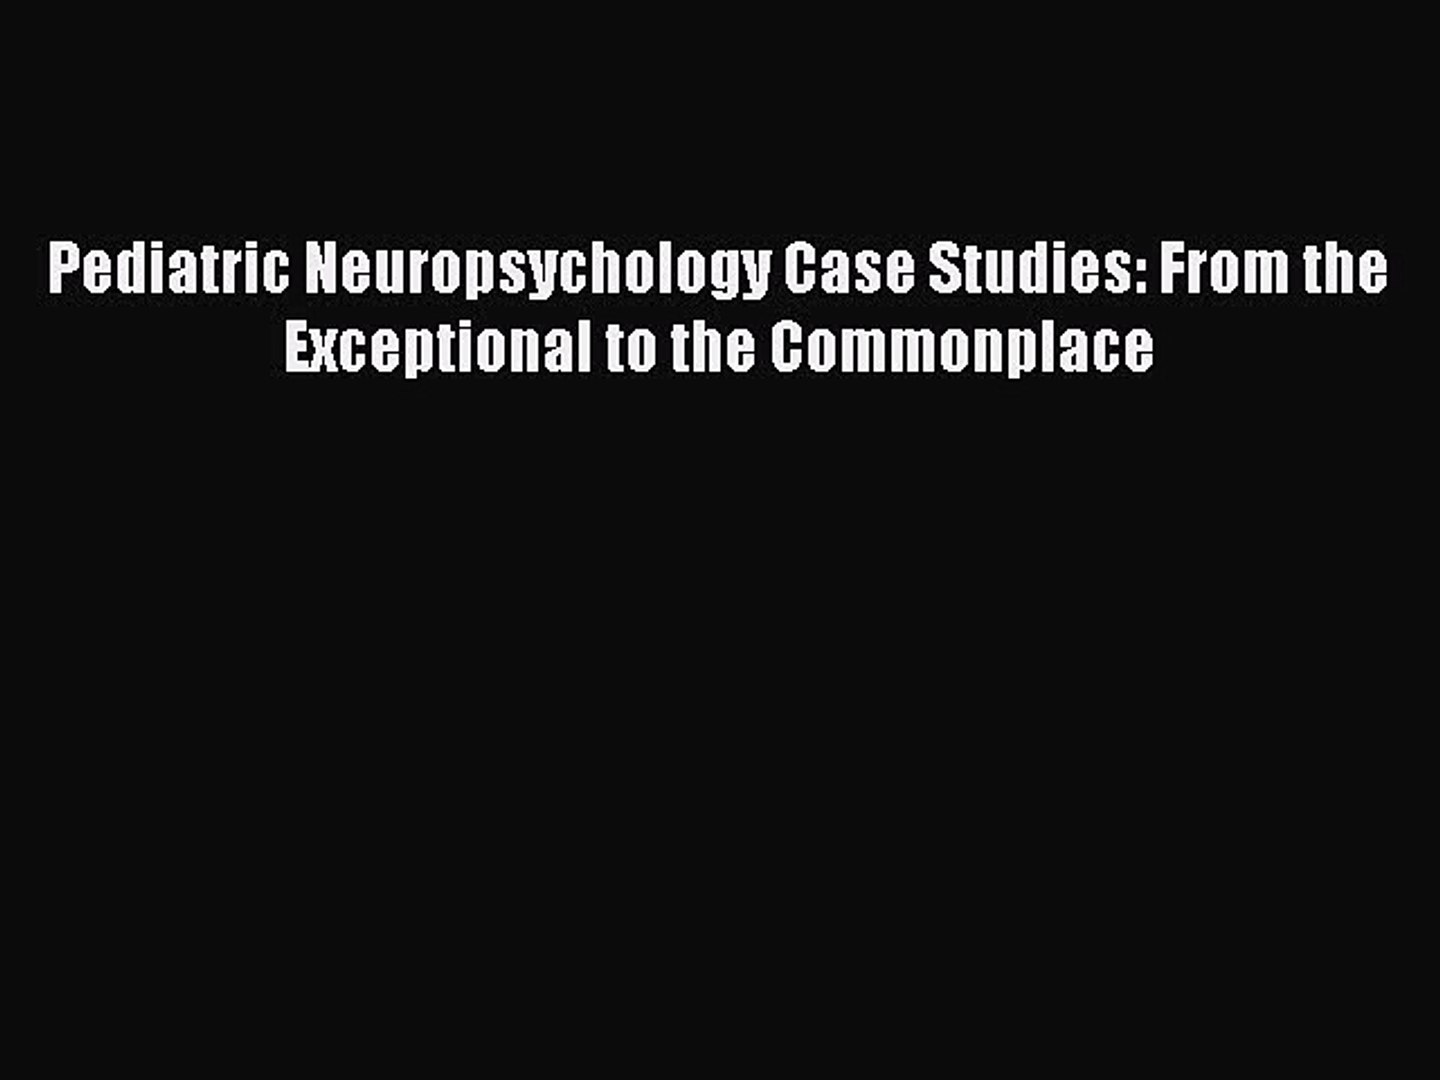 Ebook Pediatric Neuropsychology Case Studies: From the Exceptional to the  Commonplace Read